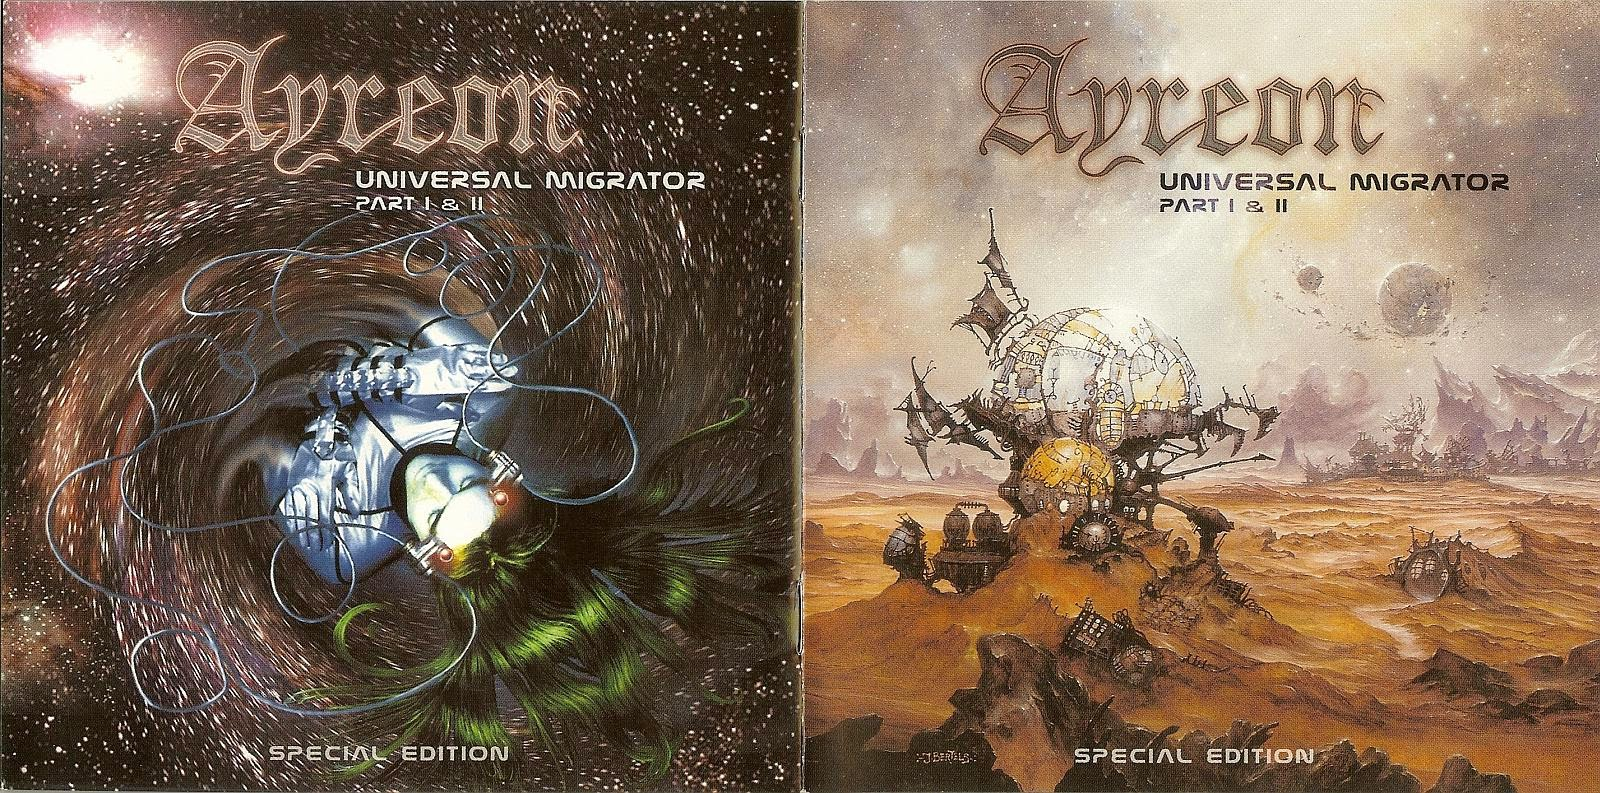 Ayreon - Universal Migrator Part 1: The Dream Sequencer